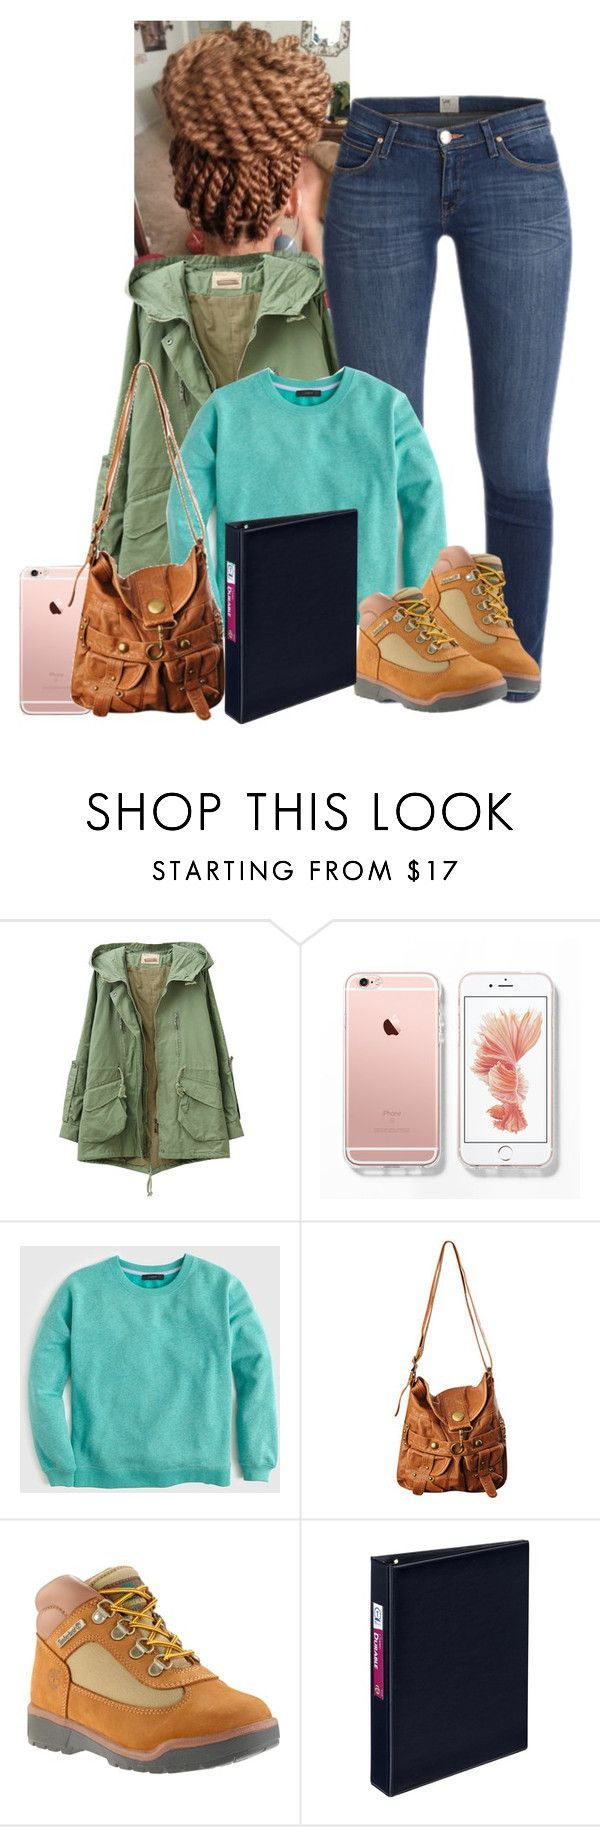 """""""Ootd✨"""" by je-mimi ❤ liked on Polyvore featuring J.Crew, Forever 21 and Avery"""